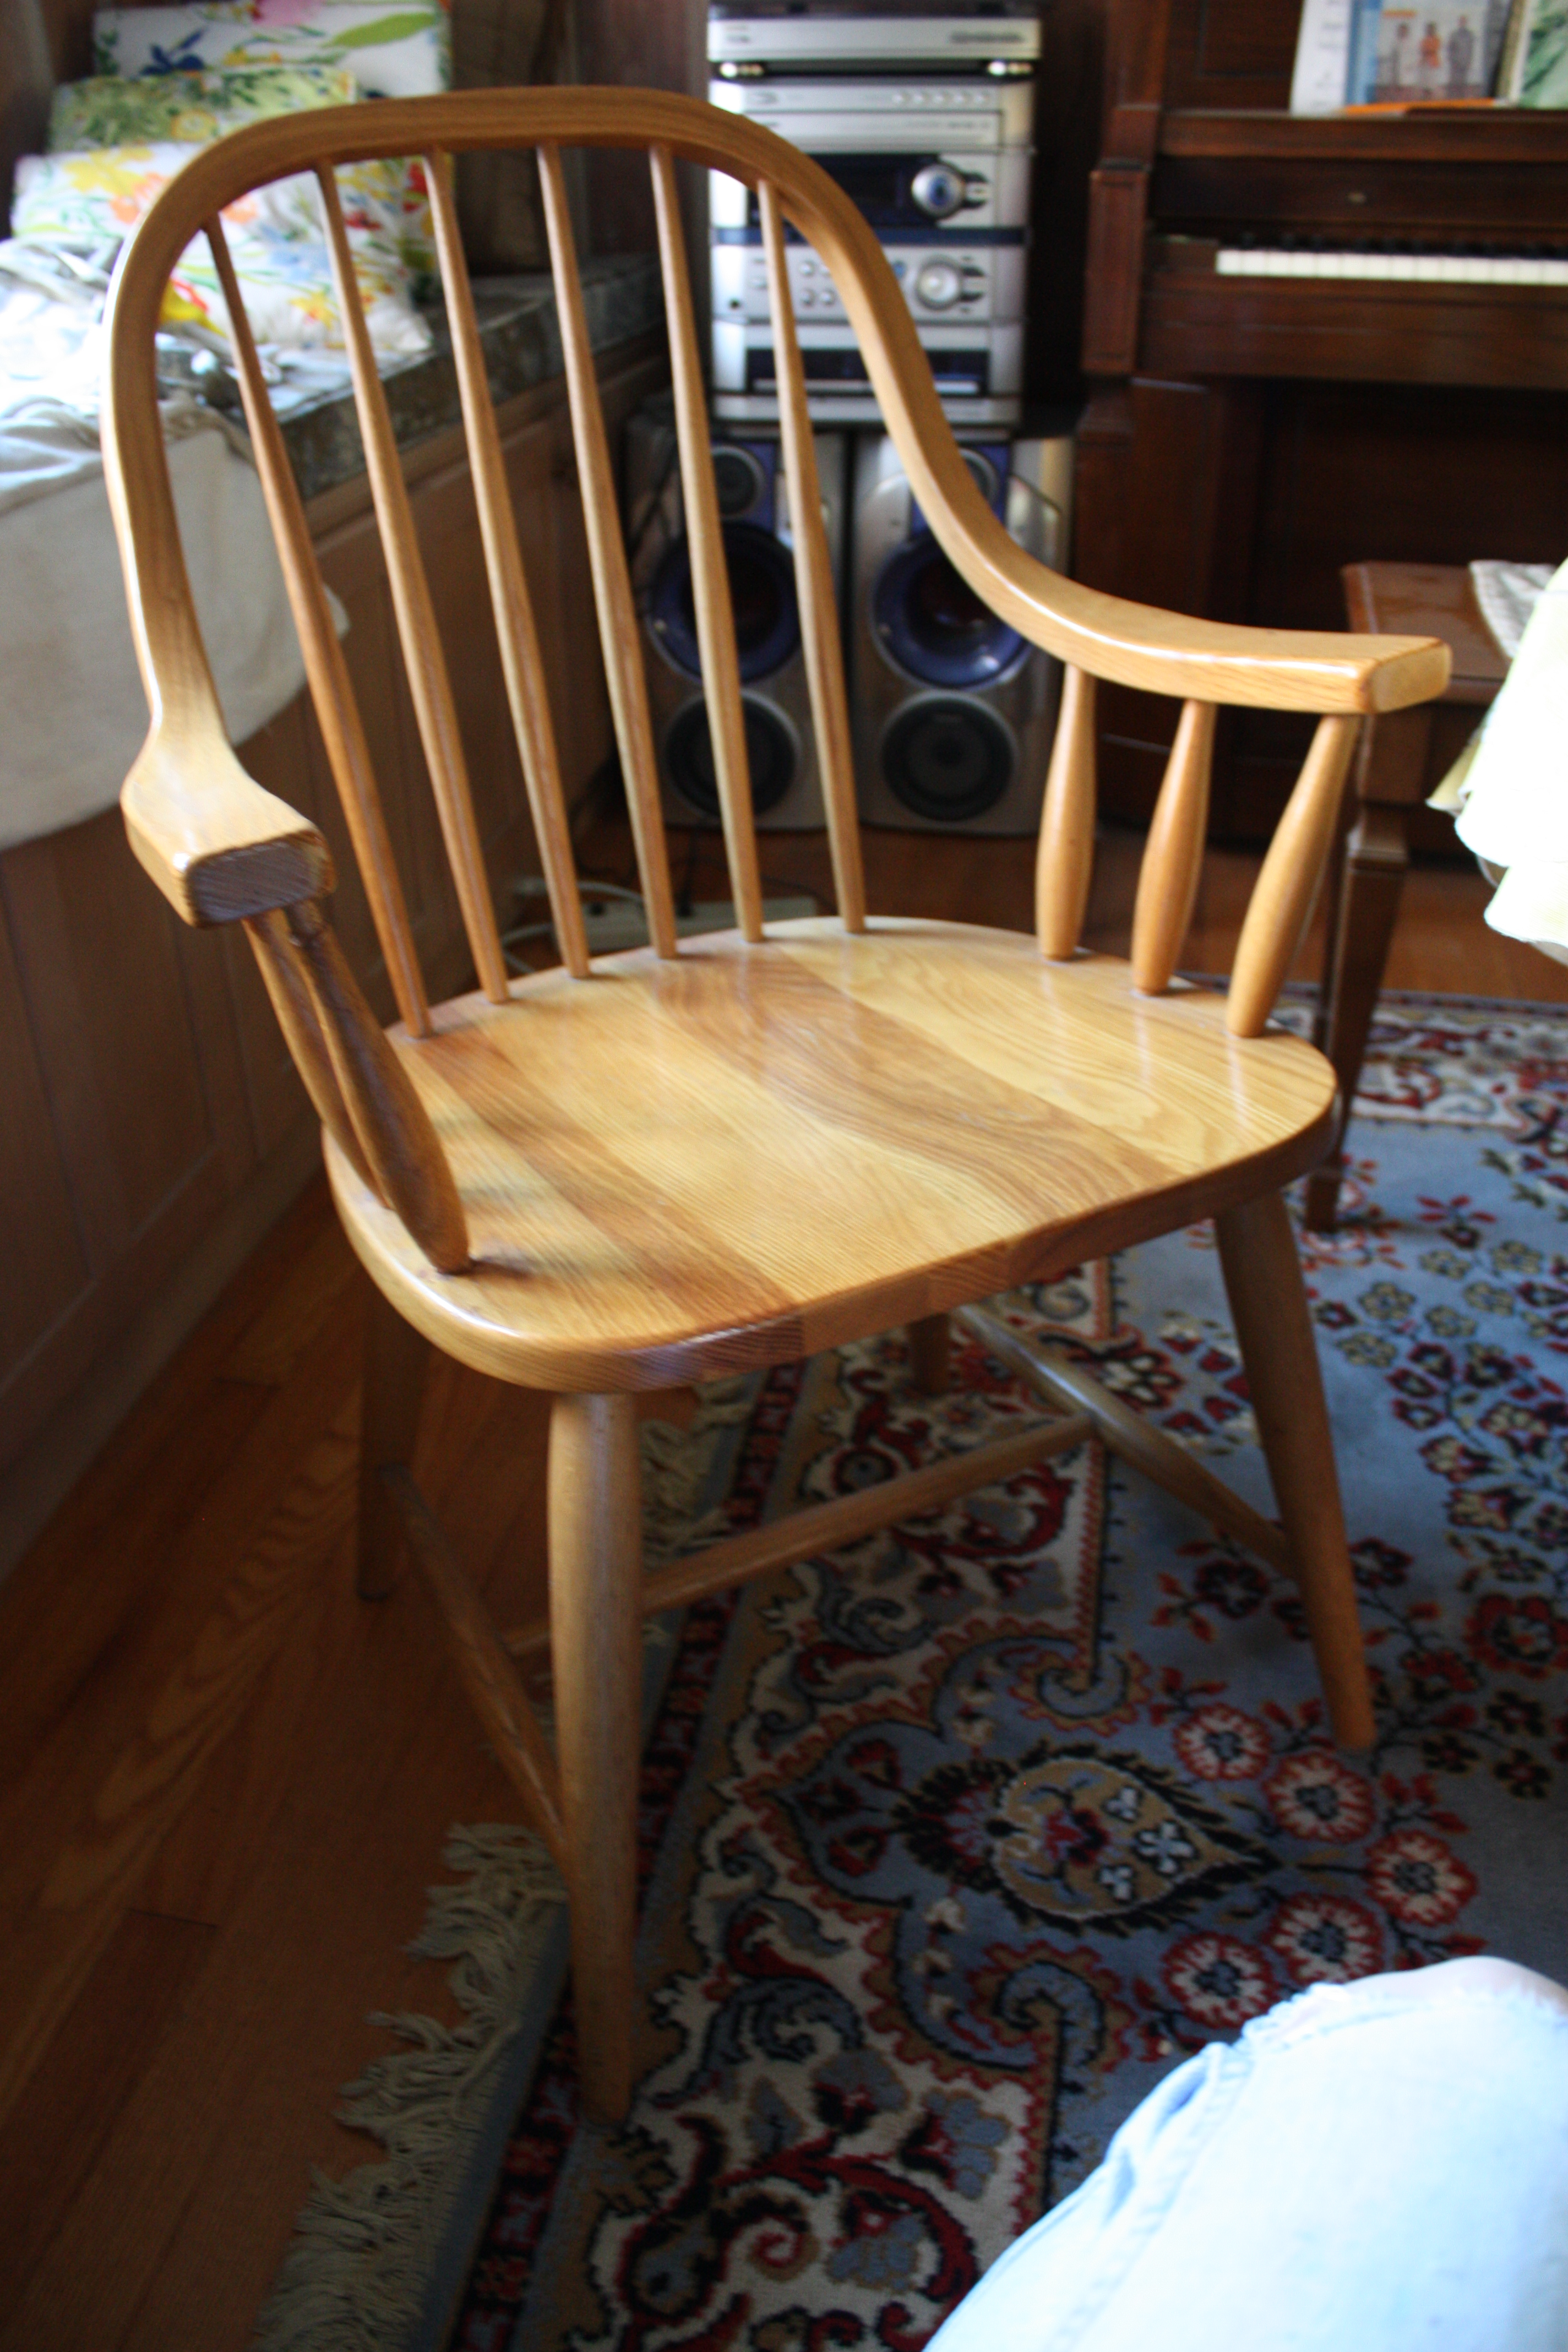 Painted Dining Room Chairs: Before And After